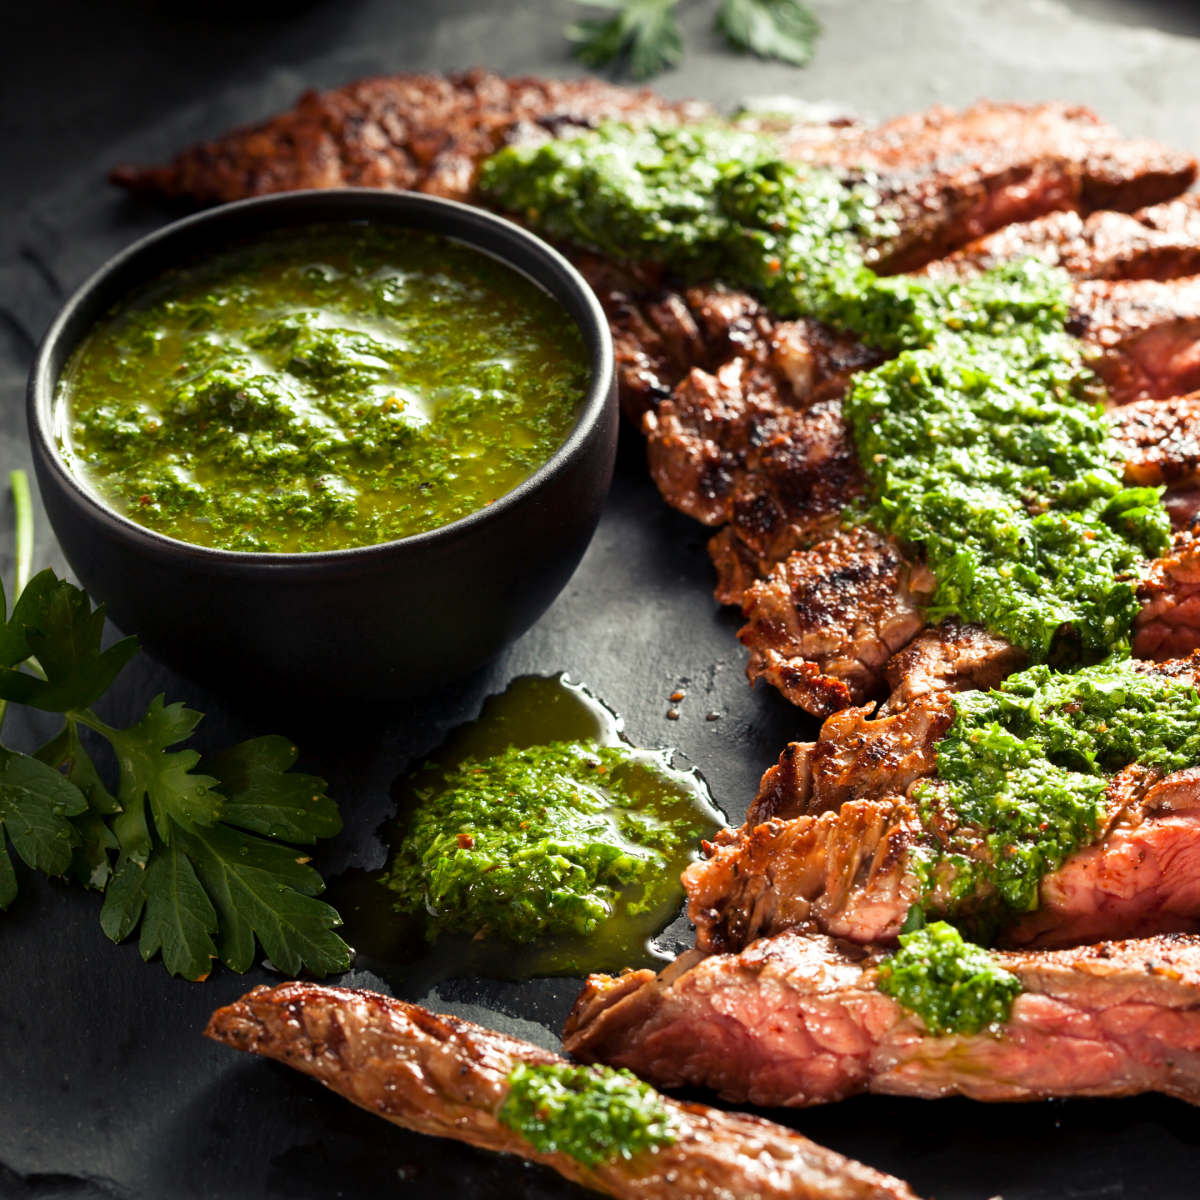 Picture of Grilled Flank Steak with Chimichurri